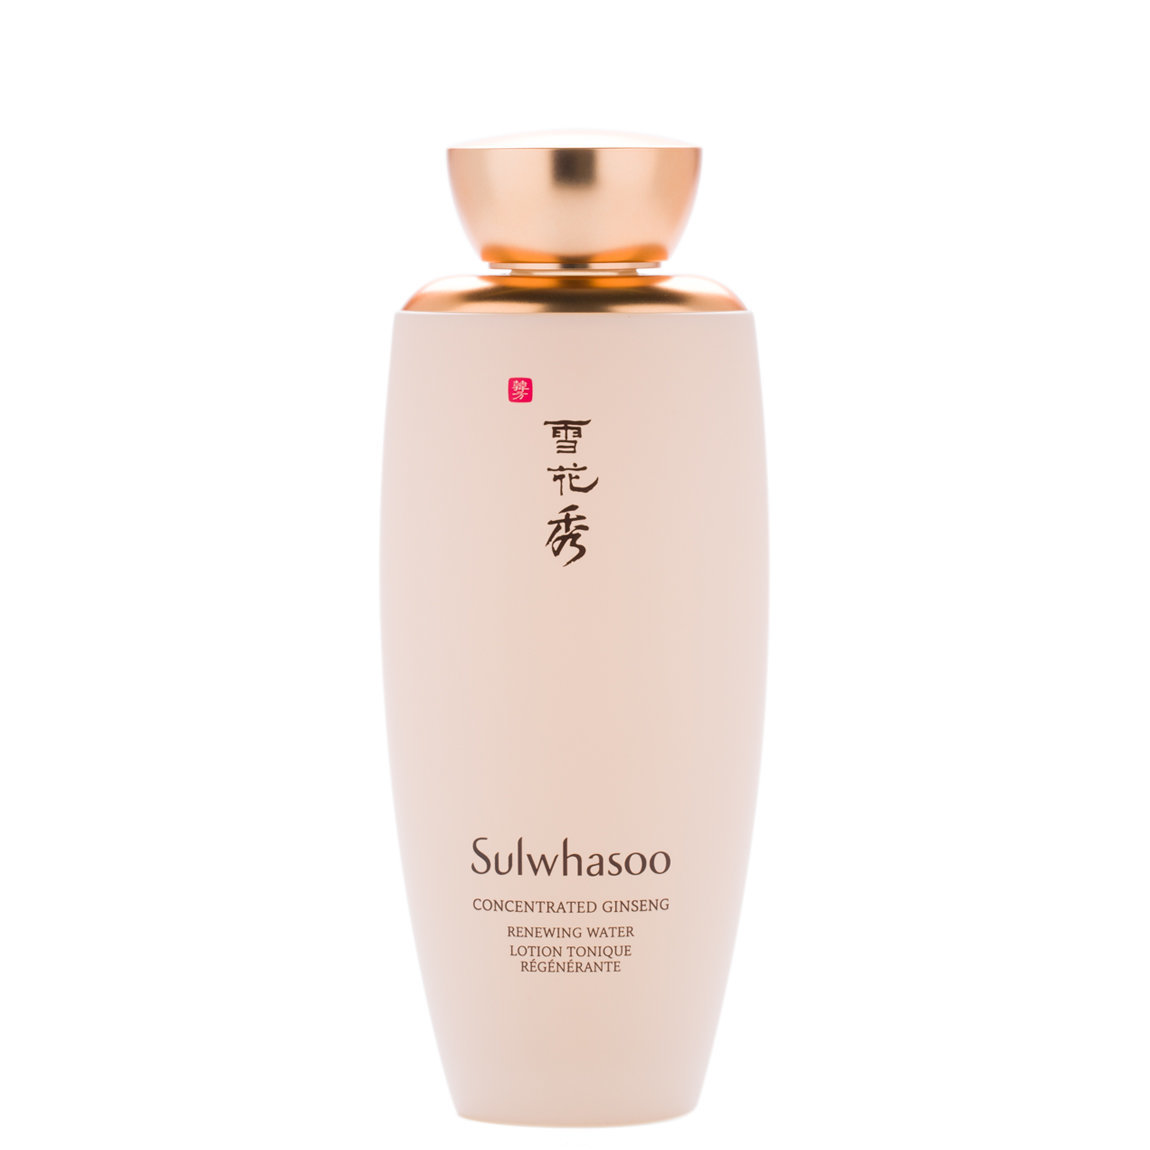 Sulwhasoo Concentrated Ginseng Renewing Water product smear.